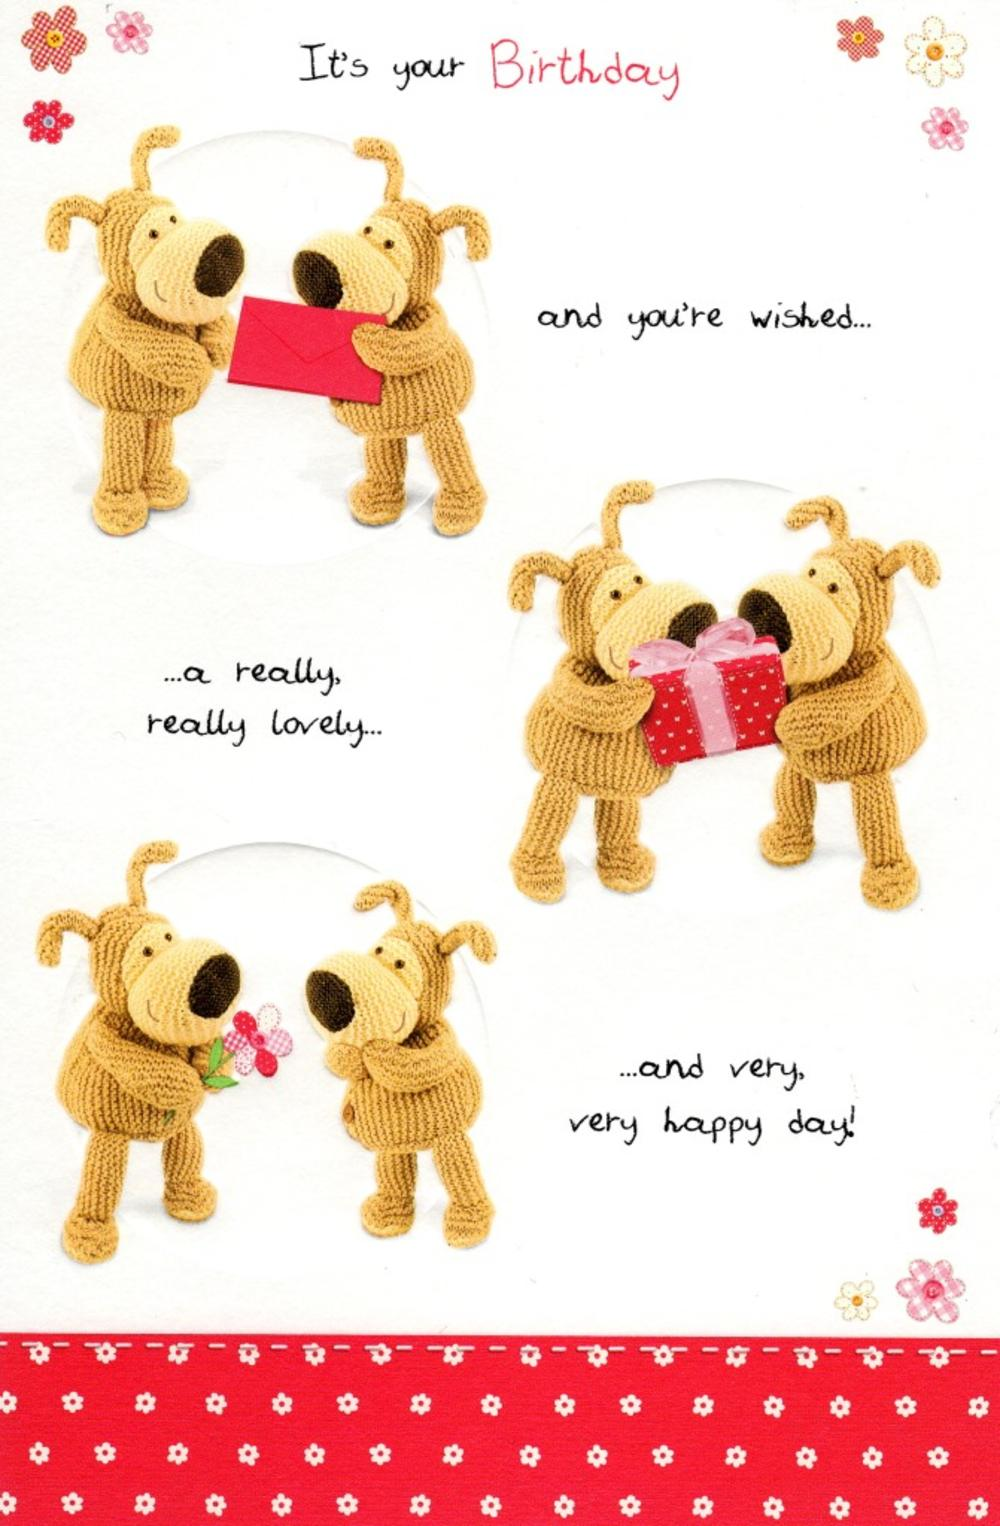 Boofle It's Your Birthday Greeting Card